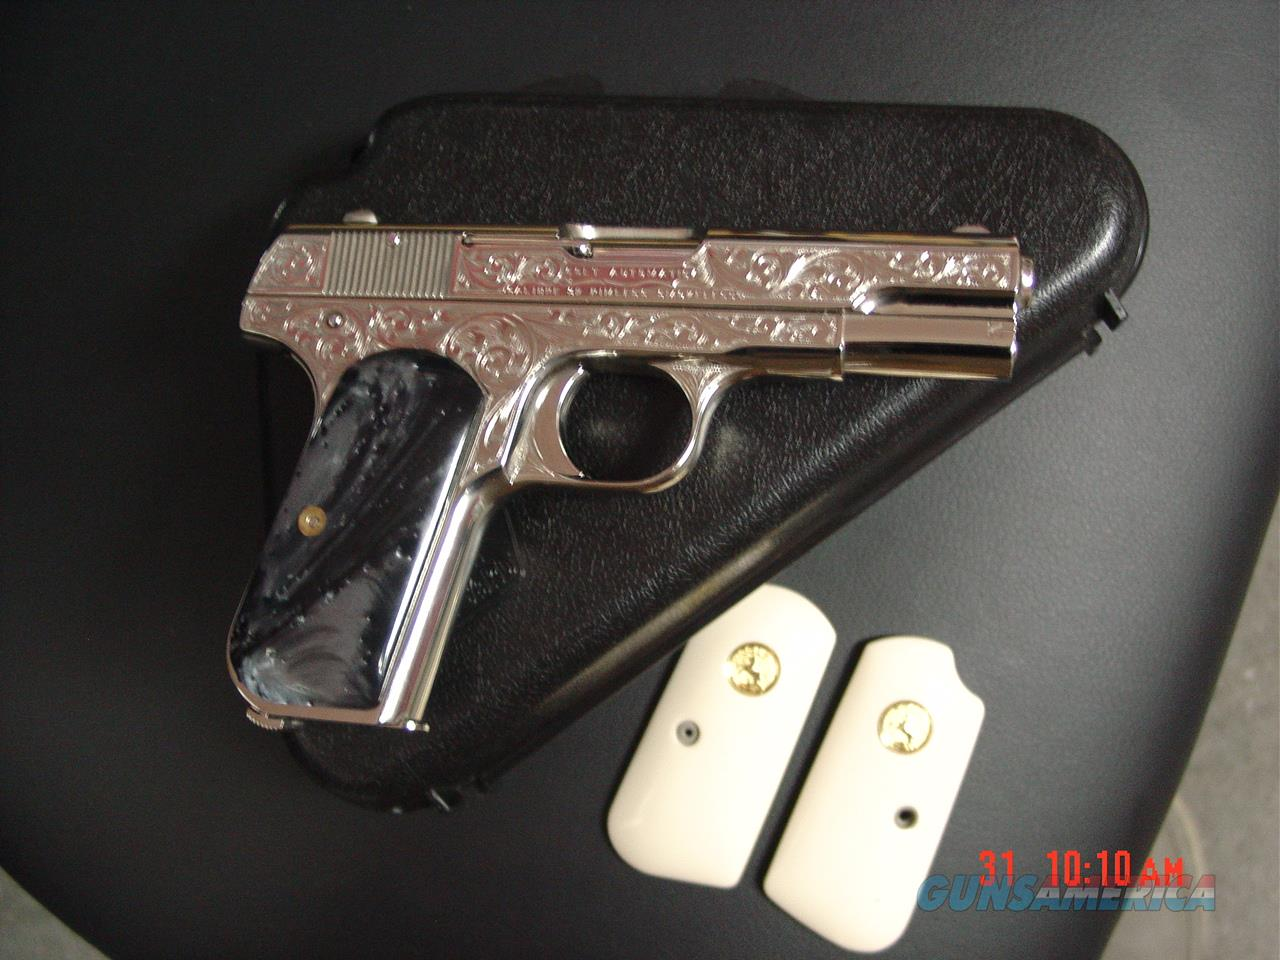 Colt 1903 hammerless,32cal,1918,master engraved by S.Leis & refinished in bright nickel,black Pearlite & bonded ivory grips, awesome work of art with certificate.  Guns > Pistols > Colt Automatic Pistols (.25, .32, & .380 cal)